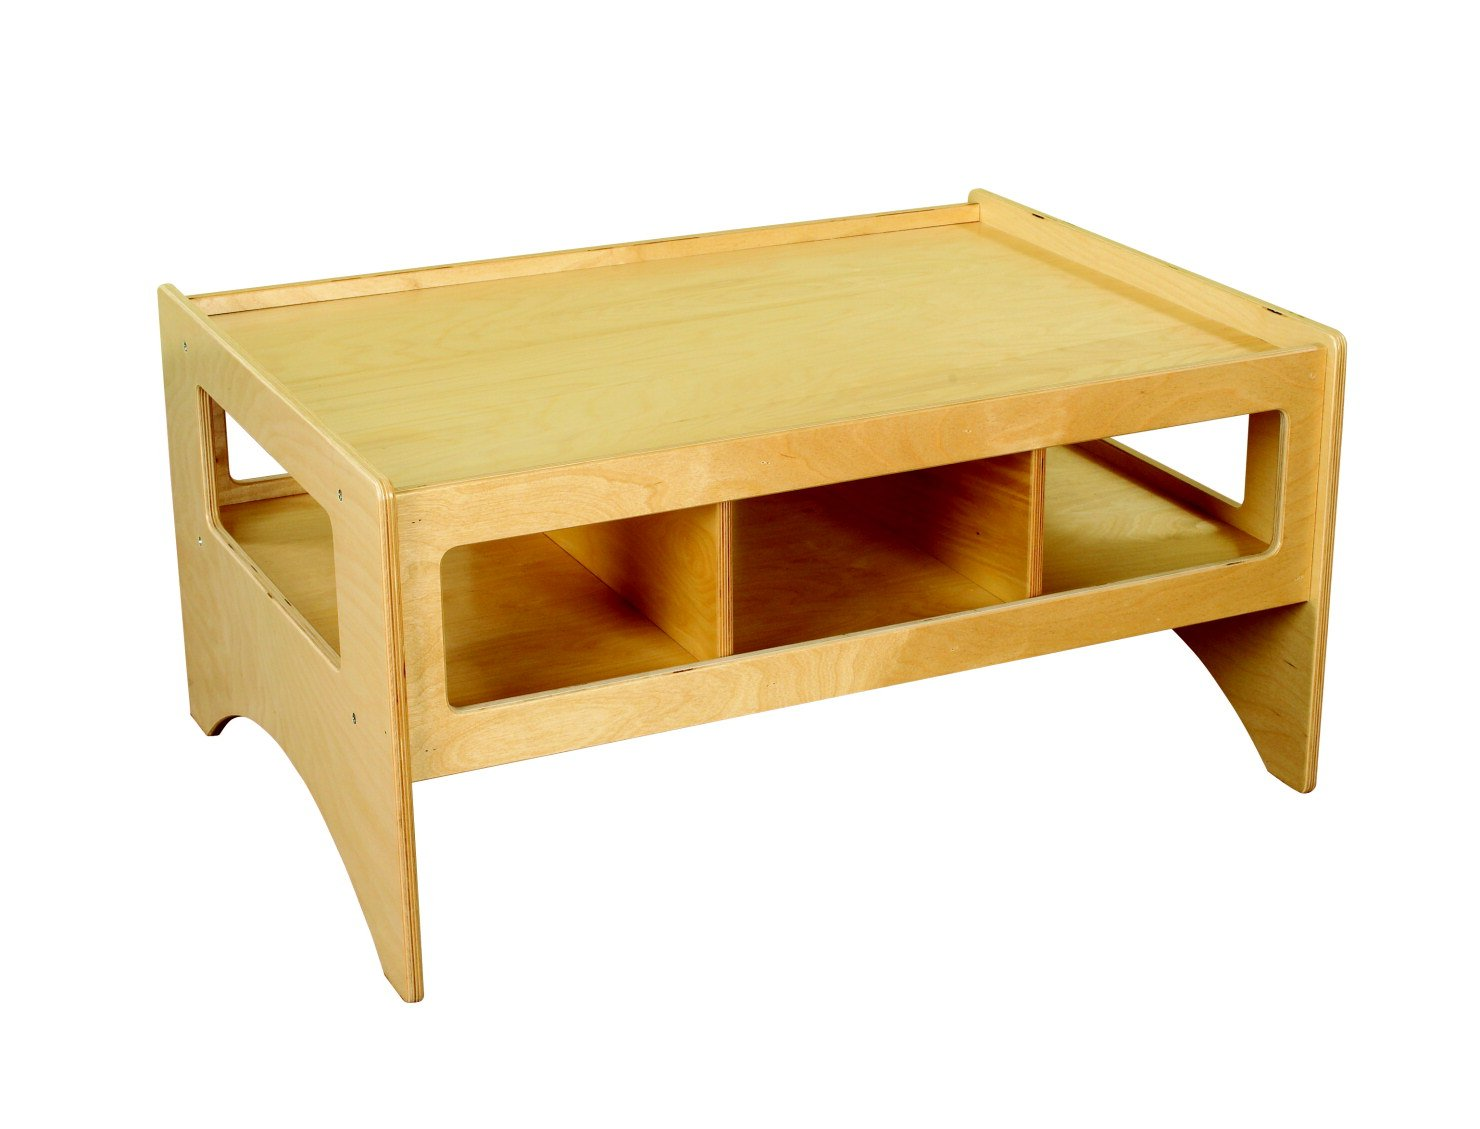 Childcraft 1464164 Multi-Purpose Play Table, Wood, 36 x 26 x 18, Natural Wood Tone School Specialty